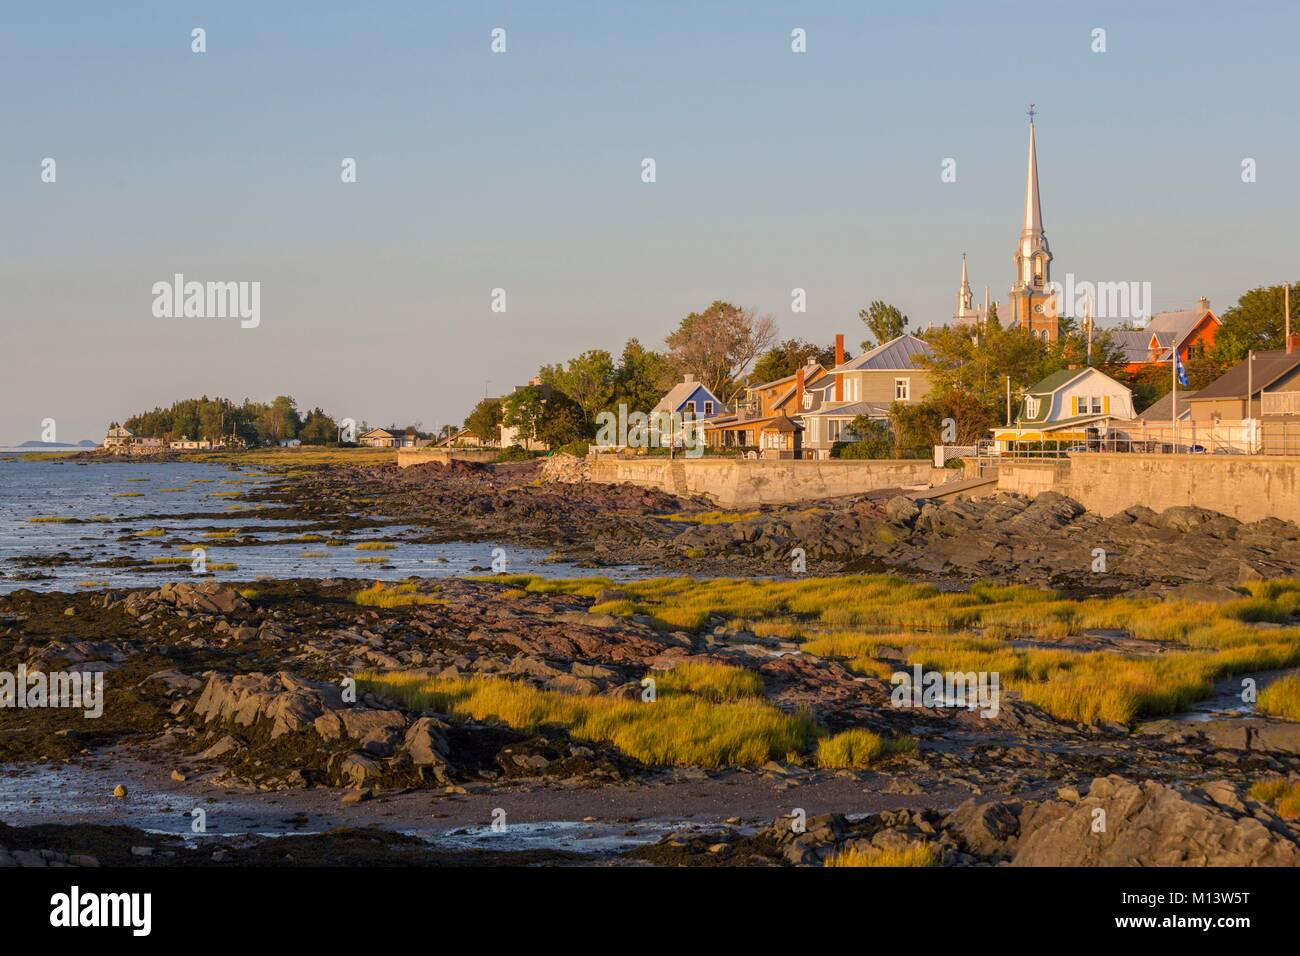 Canada, Province of Quebec, Bas-Saint-Laurent Region, Kamouraska Village on the St. Lawrence River - Stock Image